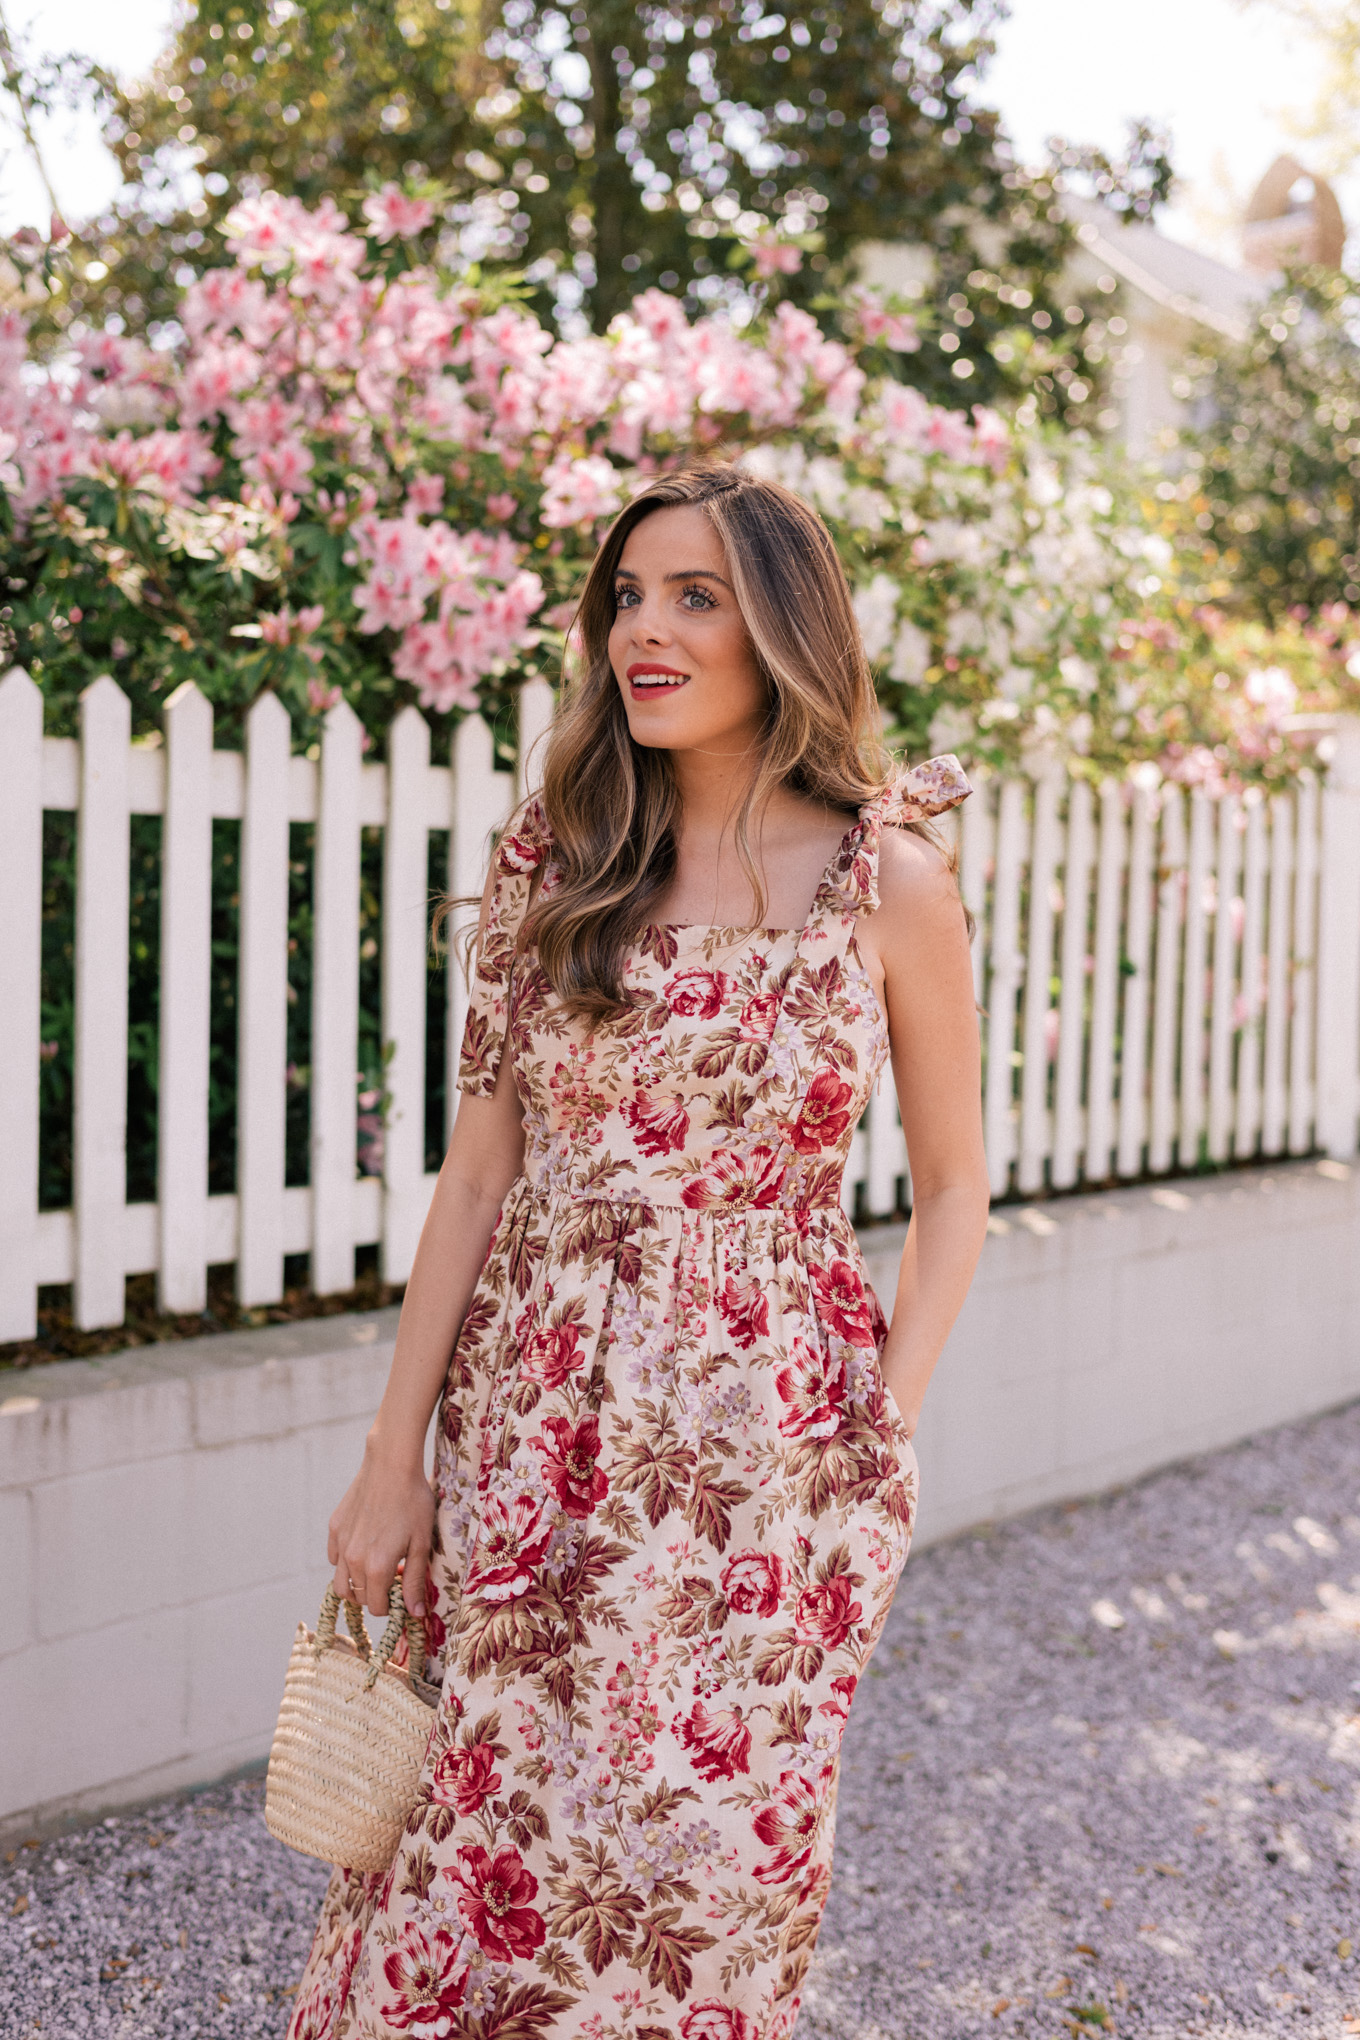 eb9c9b516271 Spring is my favorite season for maxi dresses. The longer hem keeps legs  warmer than a midi or mini would on cool mornings, but a lightweight dress  is still ...